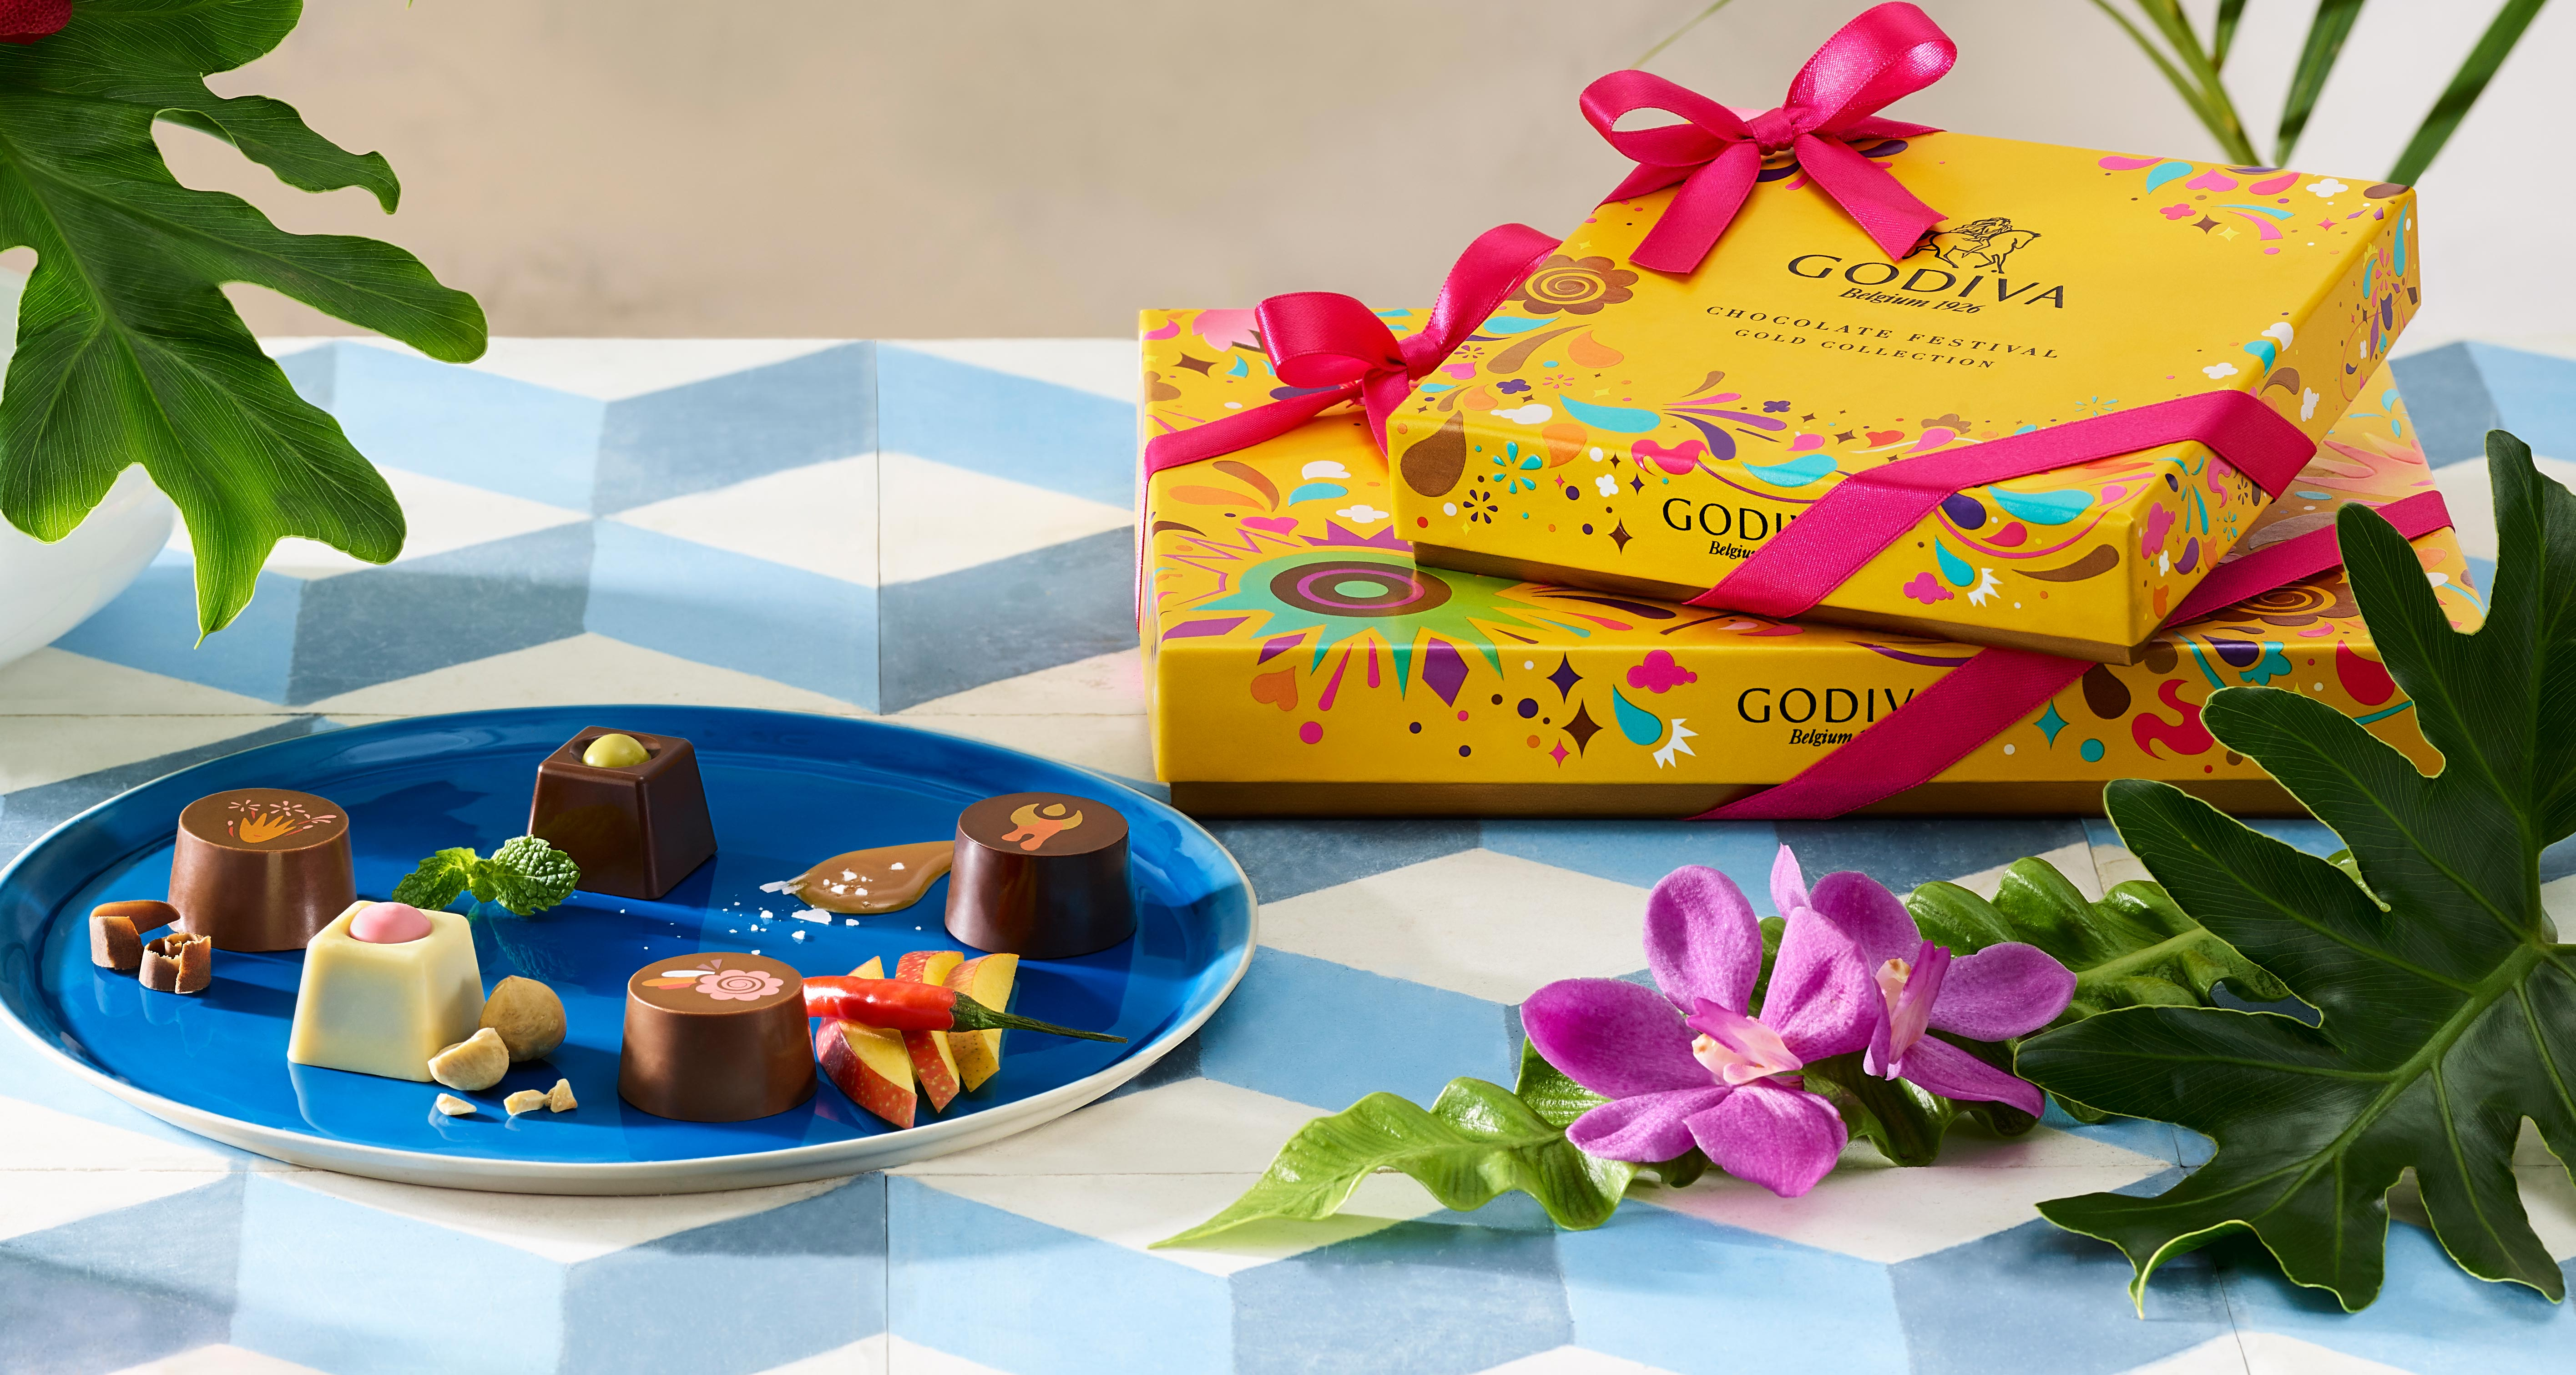 Tropical flower and plants, two Godiva chocolate boxes, miscellaneous chocolates on blue plate.